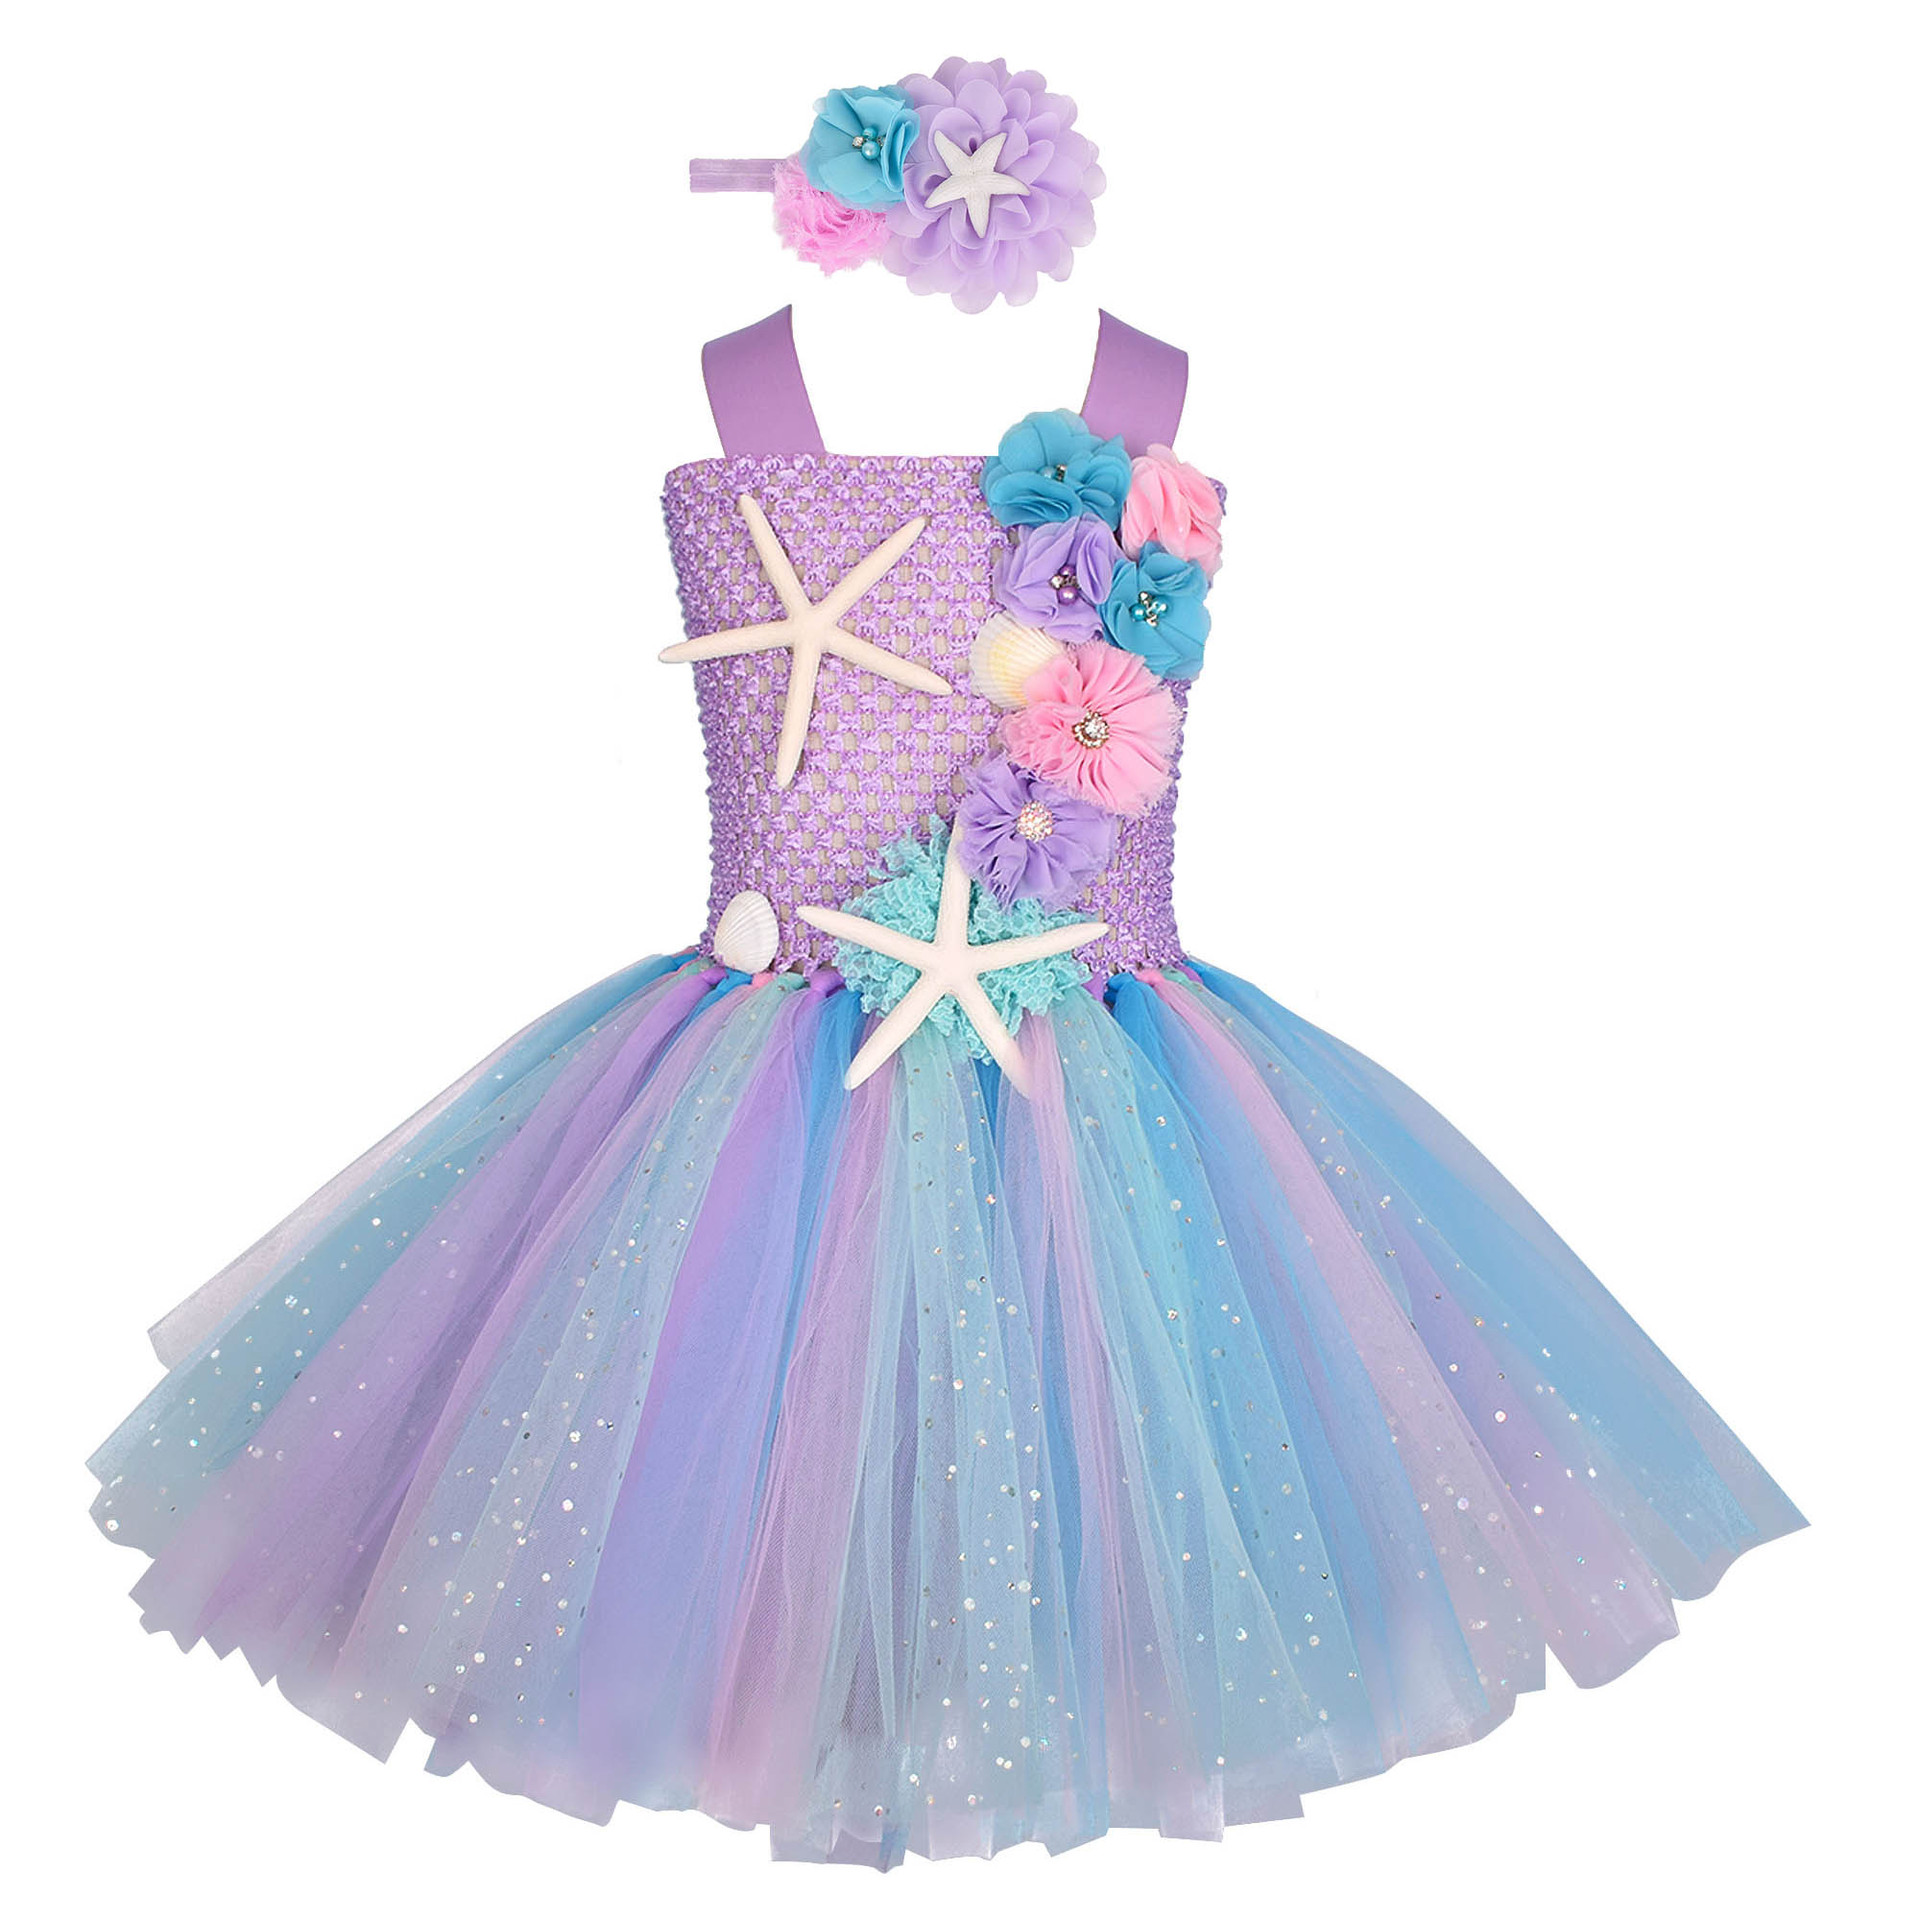 Girls Pastel Mermaid Tutu Dress Under the Sea Theme Birthday Party Costume with Flower Headband Ocean Flower Dresses 1-12Y 1